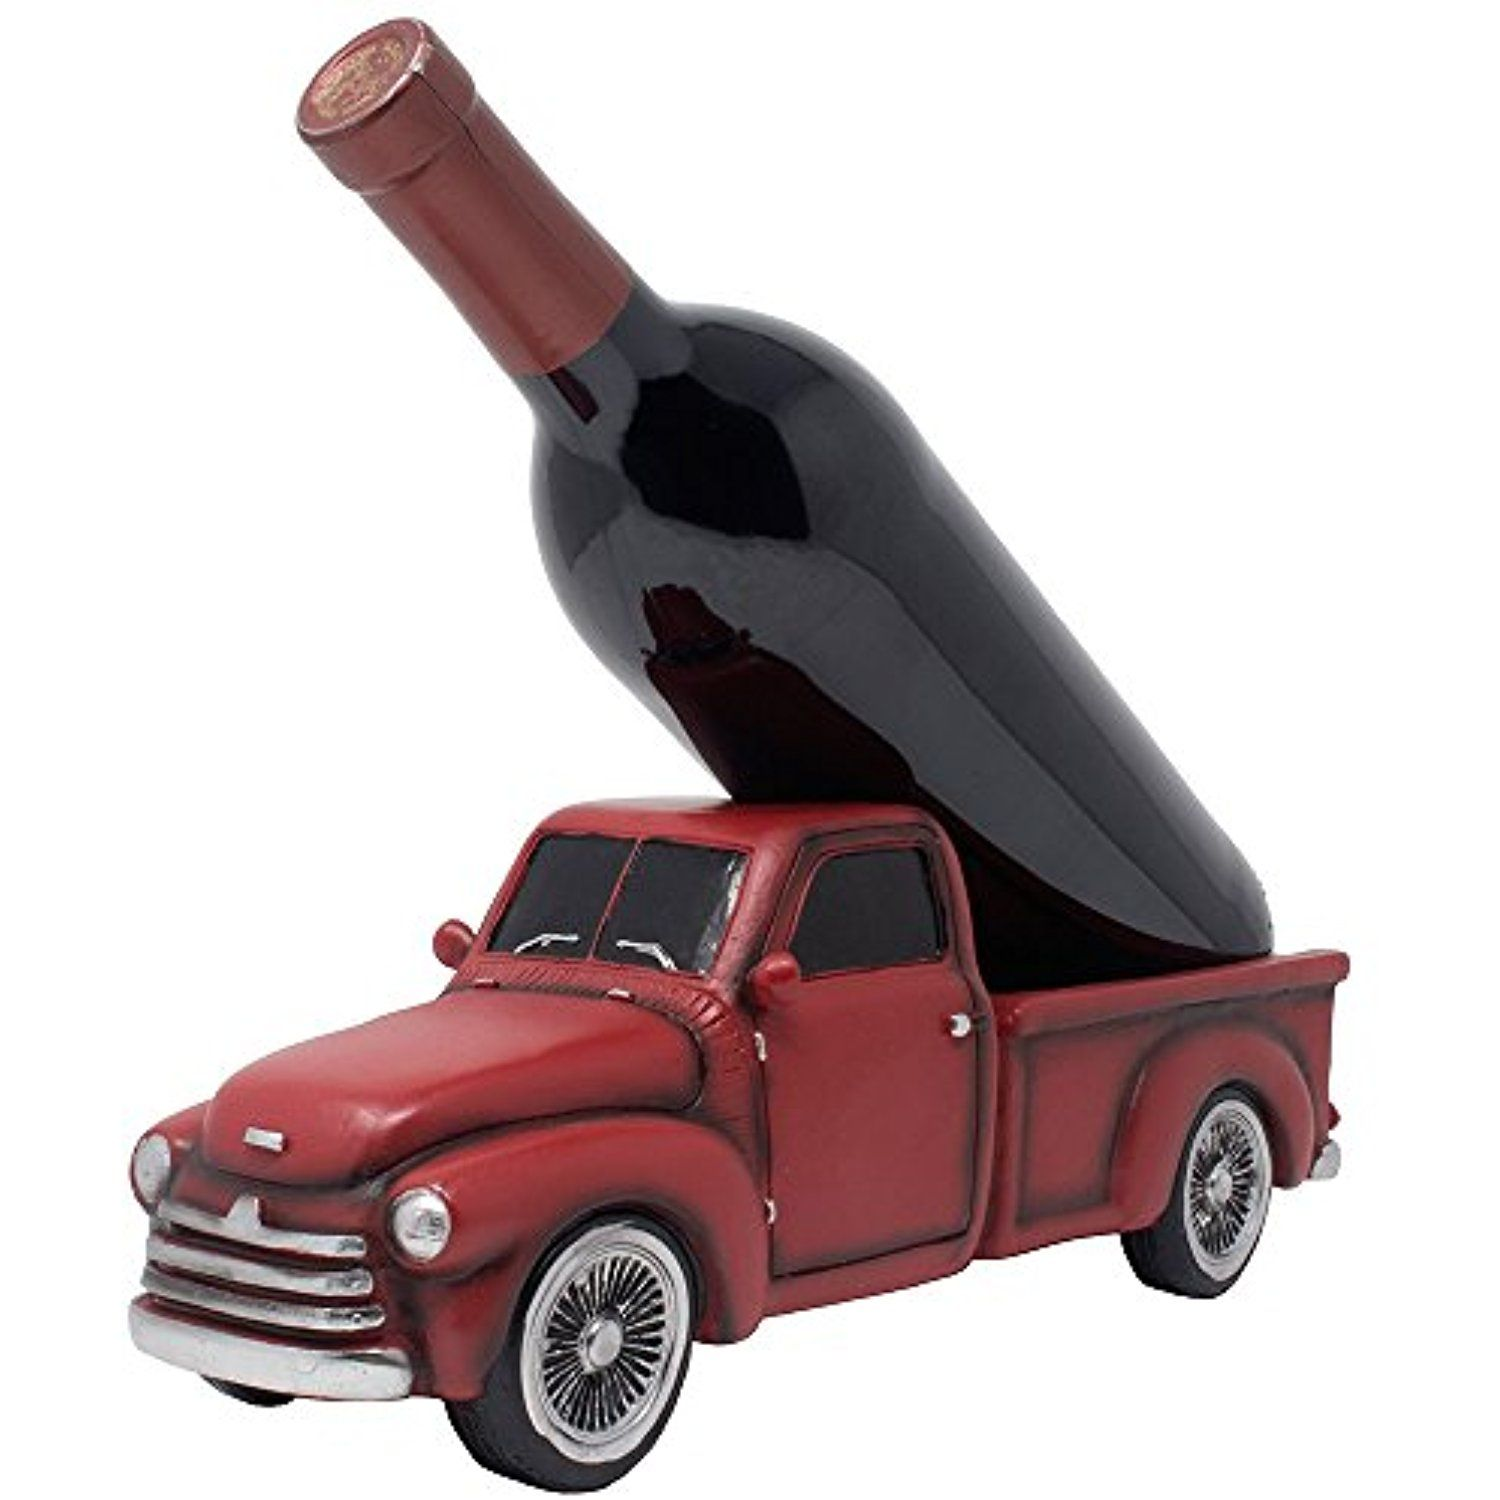 Vintage Pickup Truck Wine Bottle Holder Statue Or Decorative Wine Rack In Antique Look For Old Fashioned Country Kitchen Decor Vintage Pickup Trucks Rustic Bar